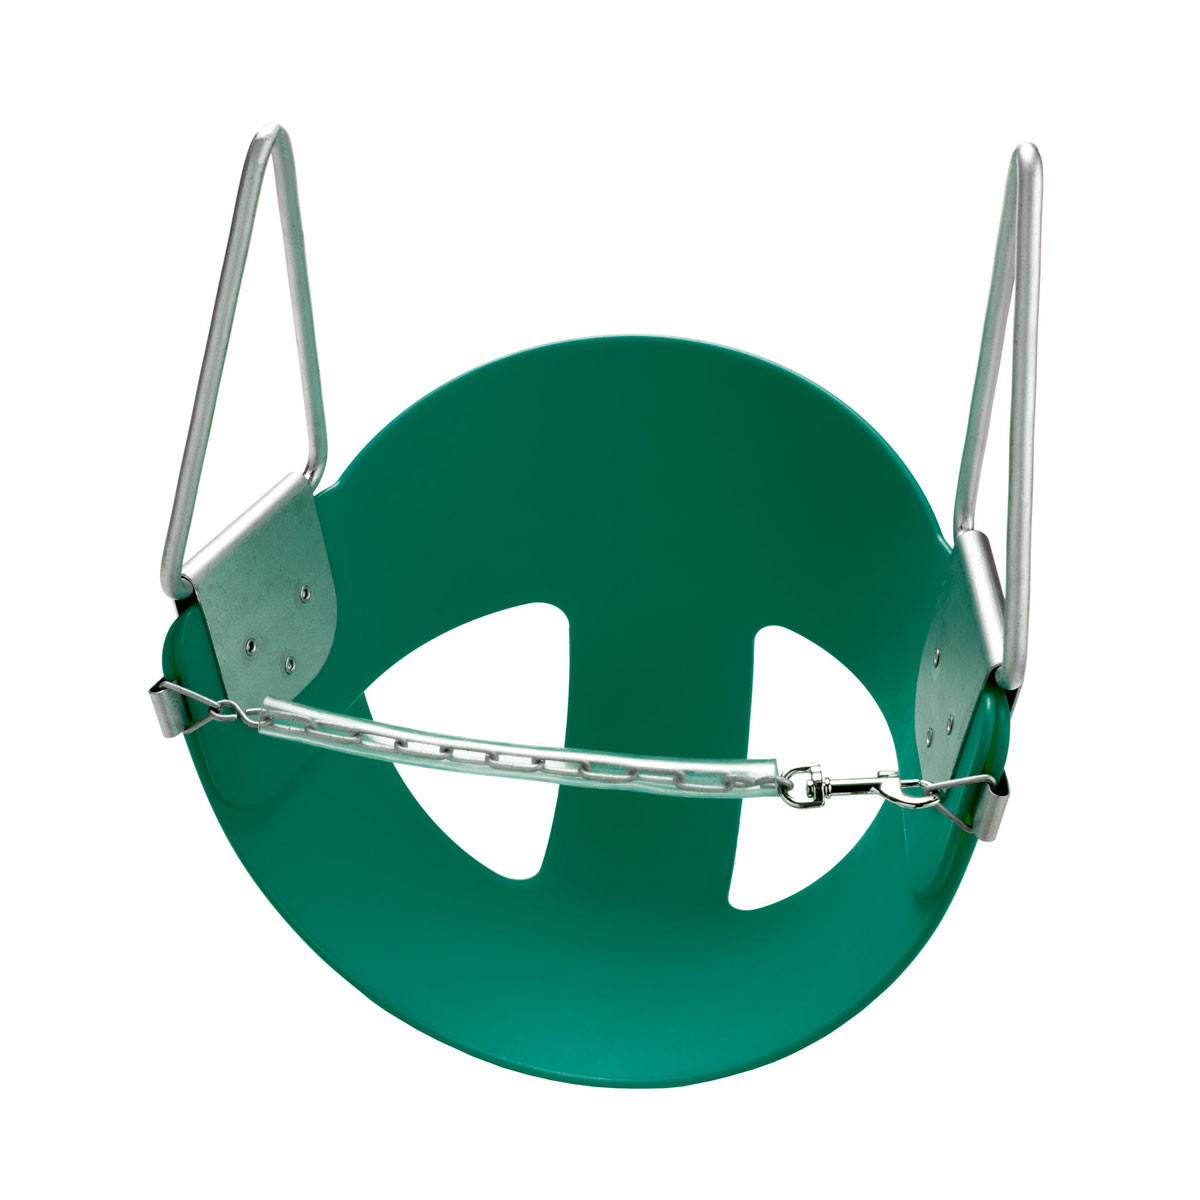 CoPoly Half Bucket Swing Seat - Green